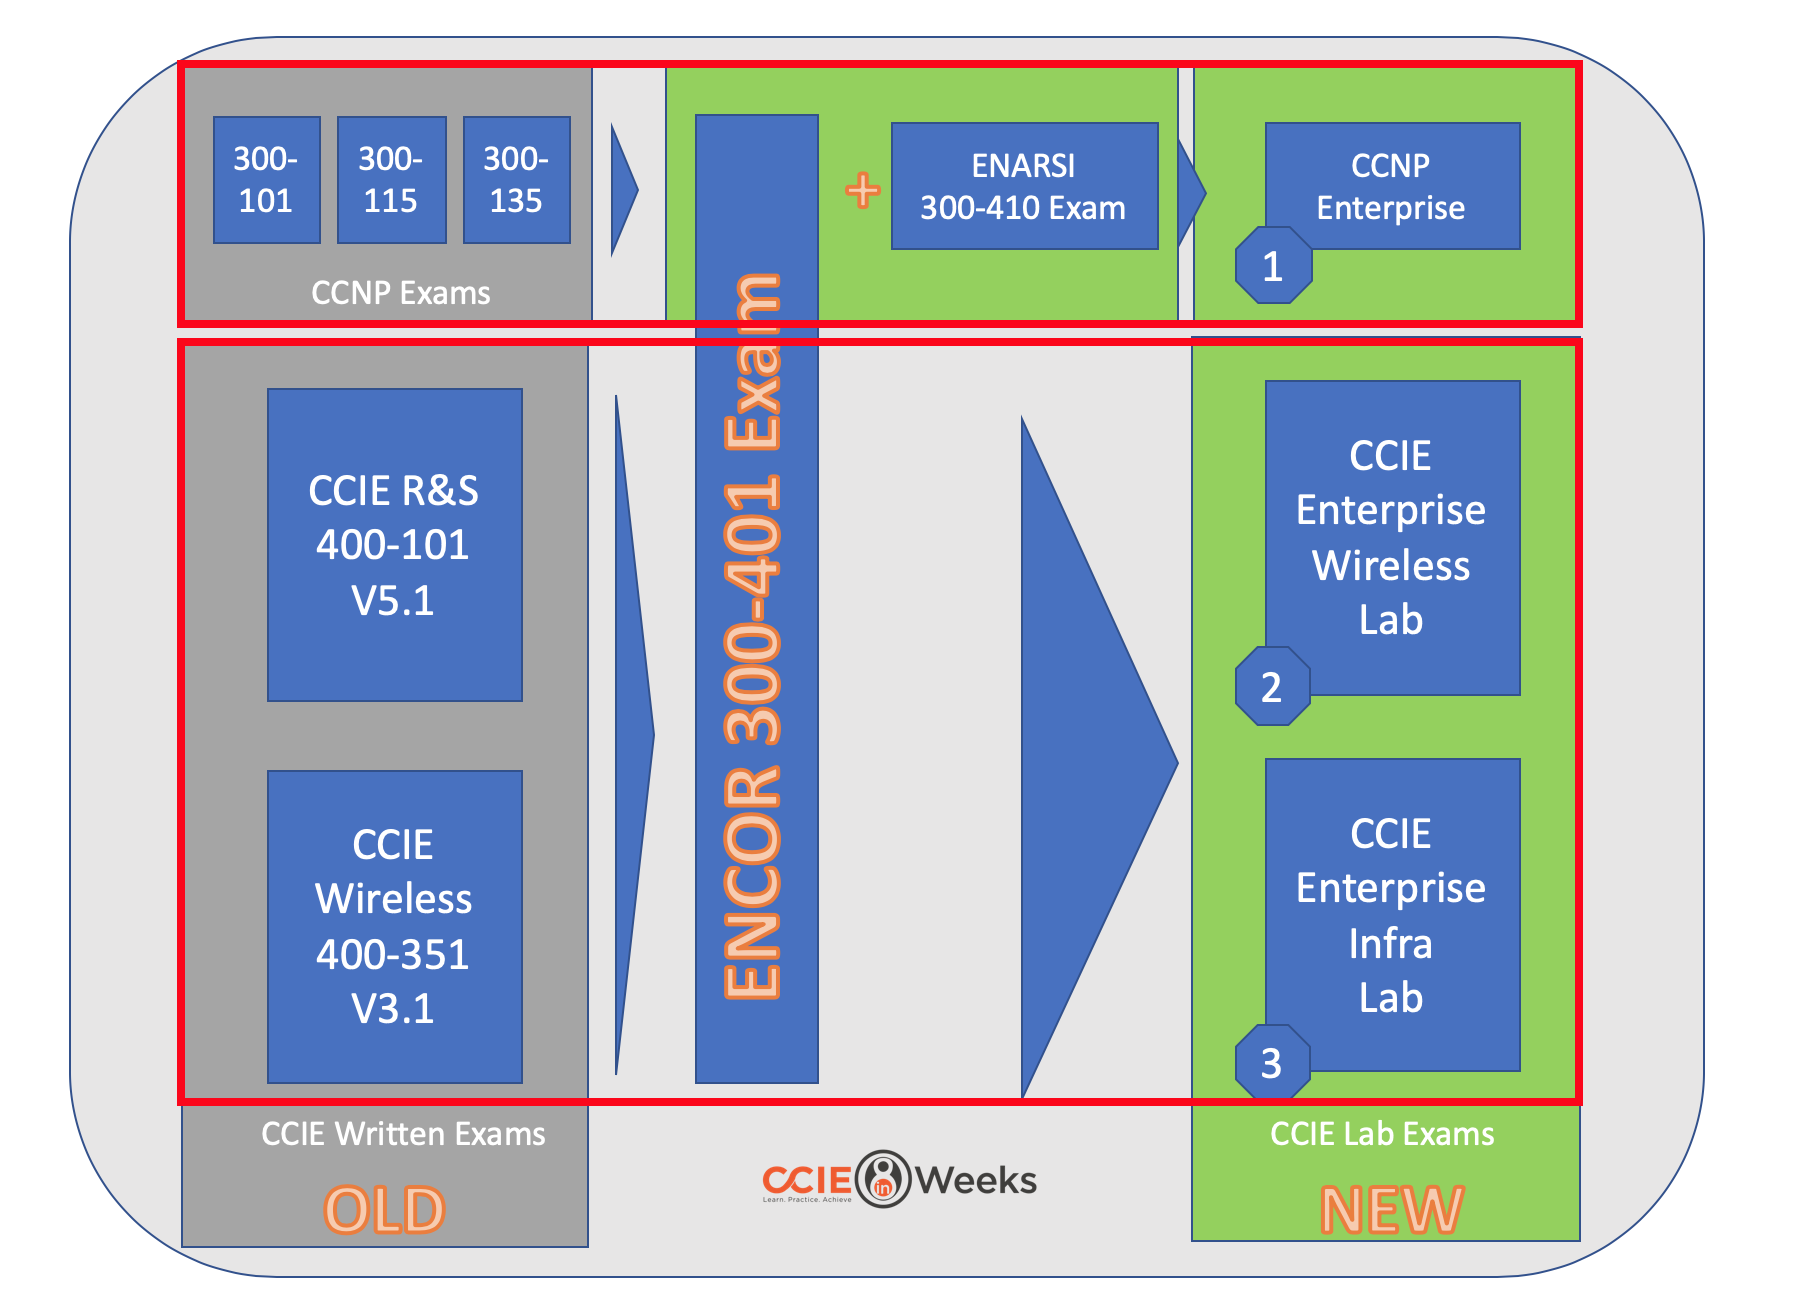 Implementing Cisco Enterprise Advanced Routing and Services (ENARSI 300-410)